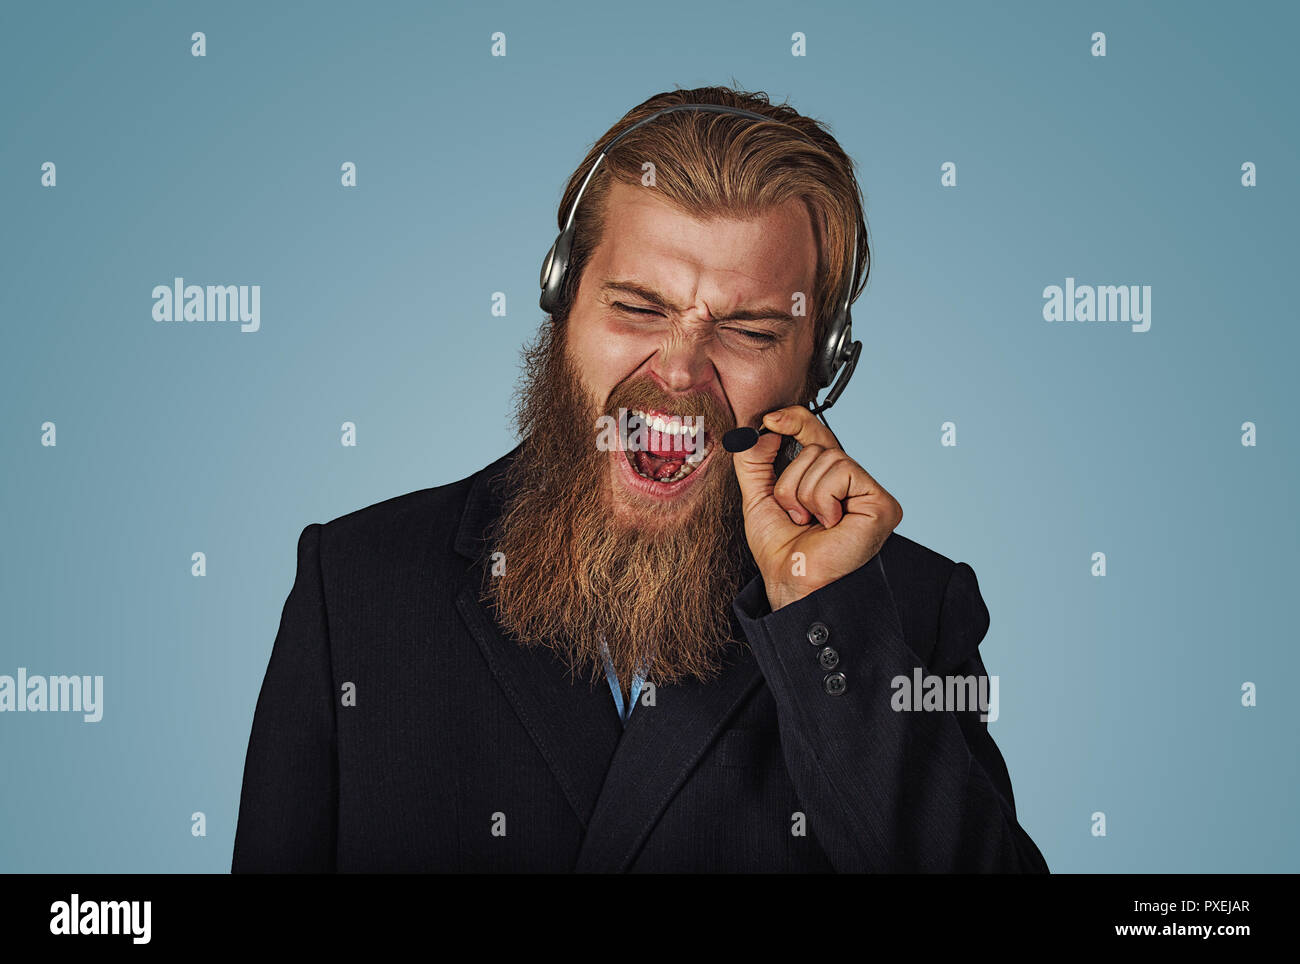 Angry Bearded hipster businessman aggressive customer support phone operator with headset, he is yelling and having a discussion with a customer isola - Stock Image